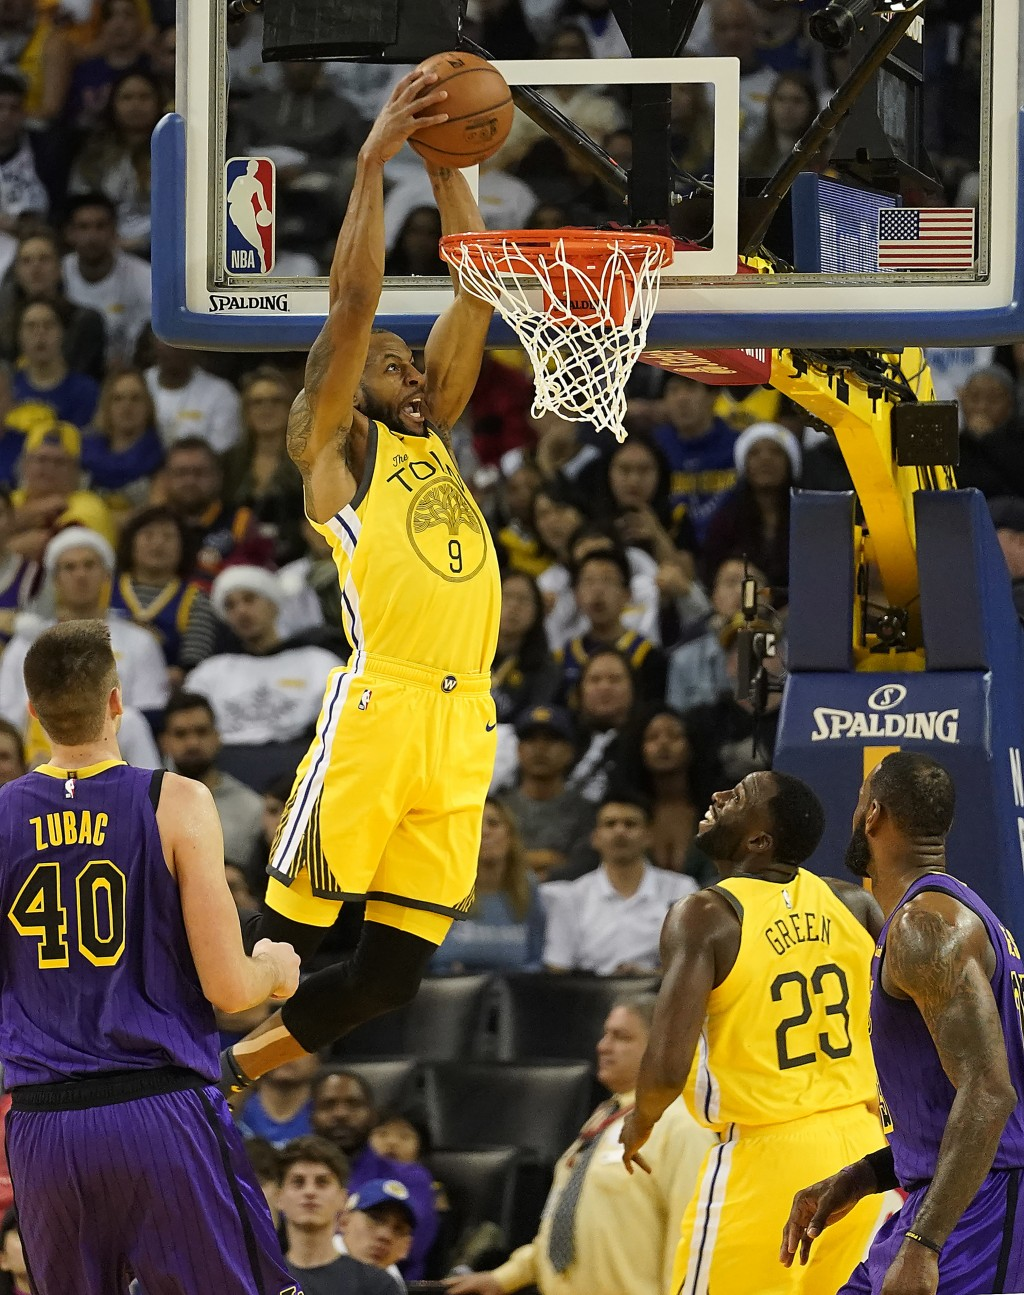 Golden State Warriors guard Andre Iguodala (9) dunks in front of Los Angeles Lakers center Ivica Zubac (40) during the first half of an NBA basketball